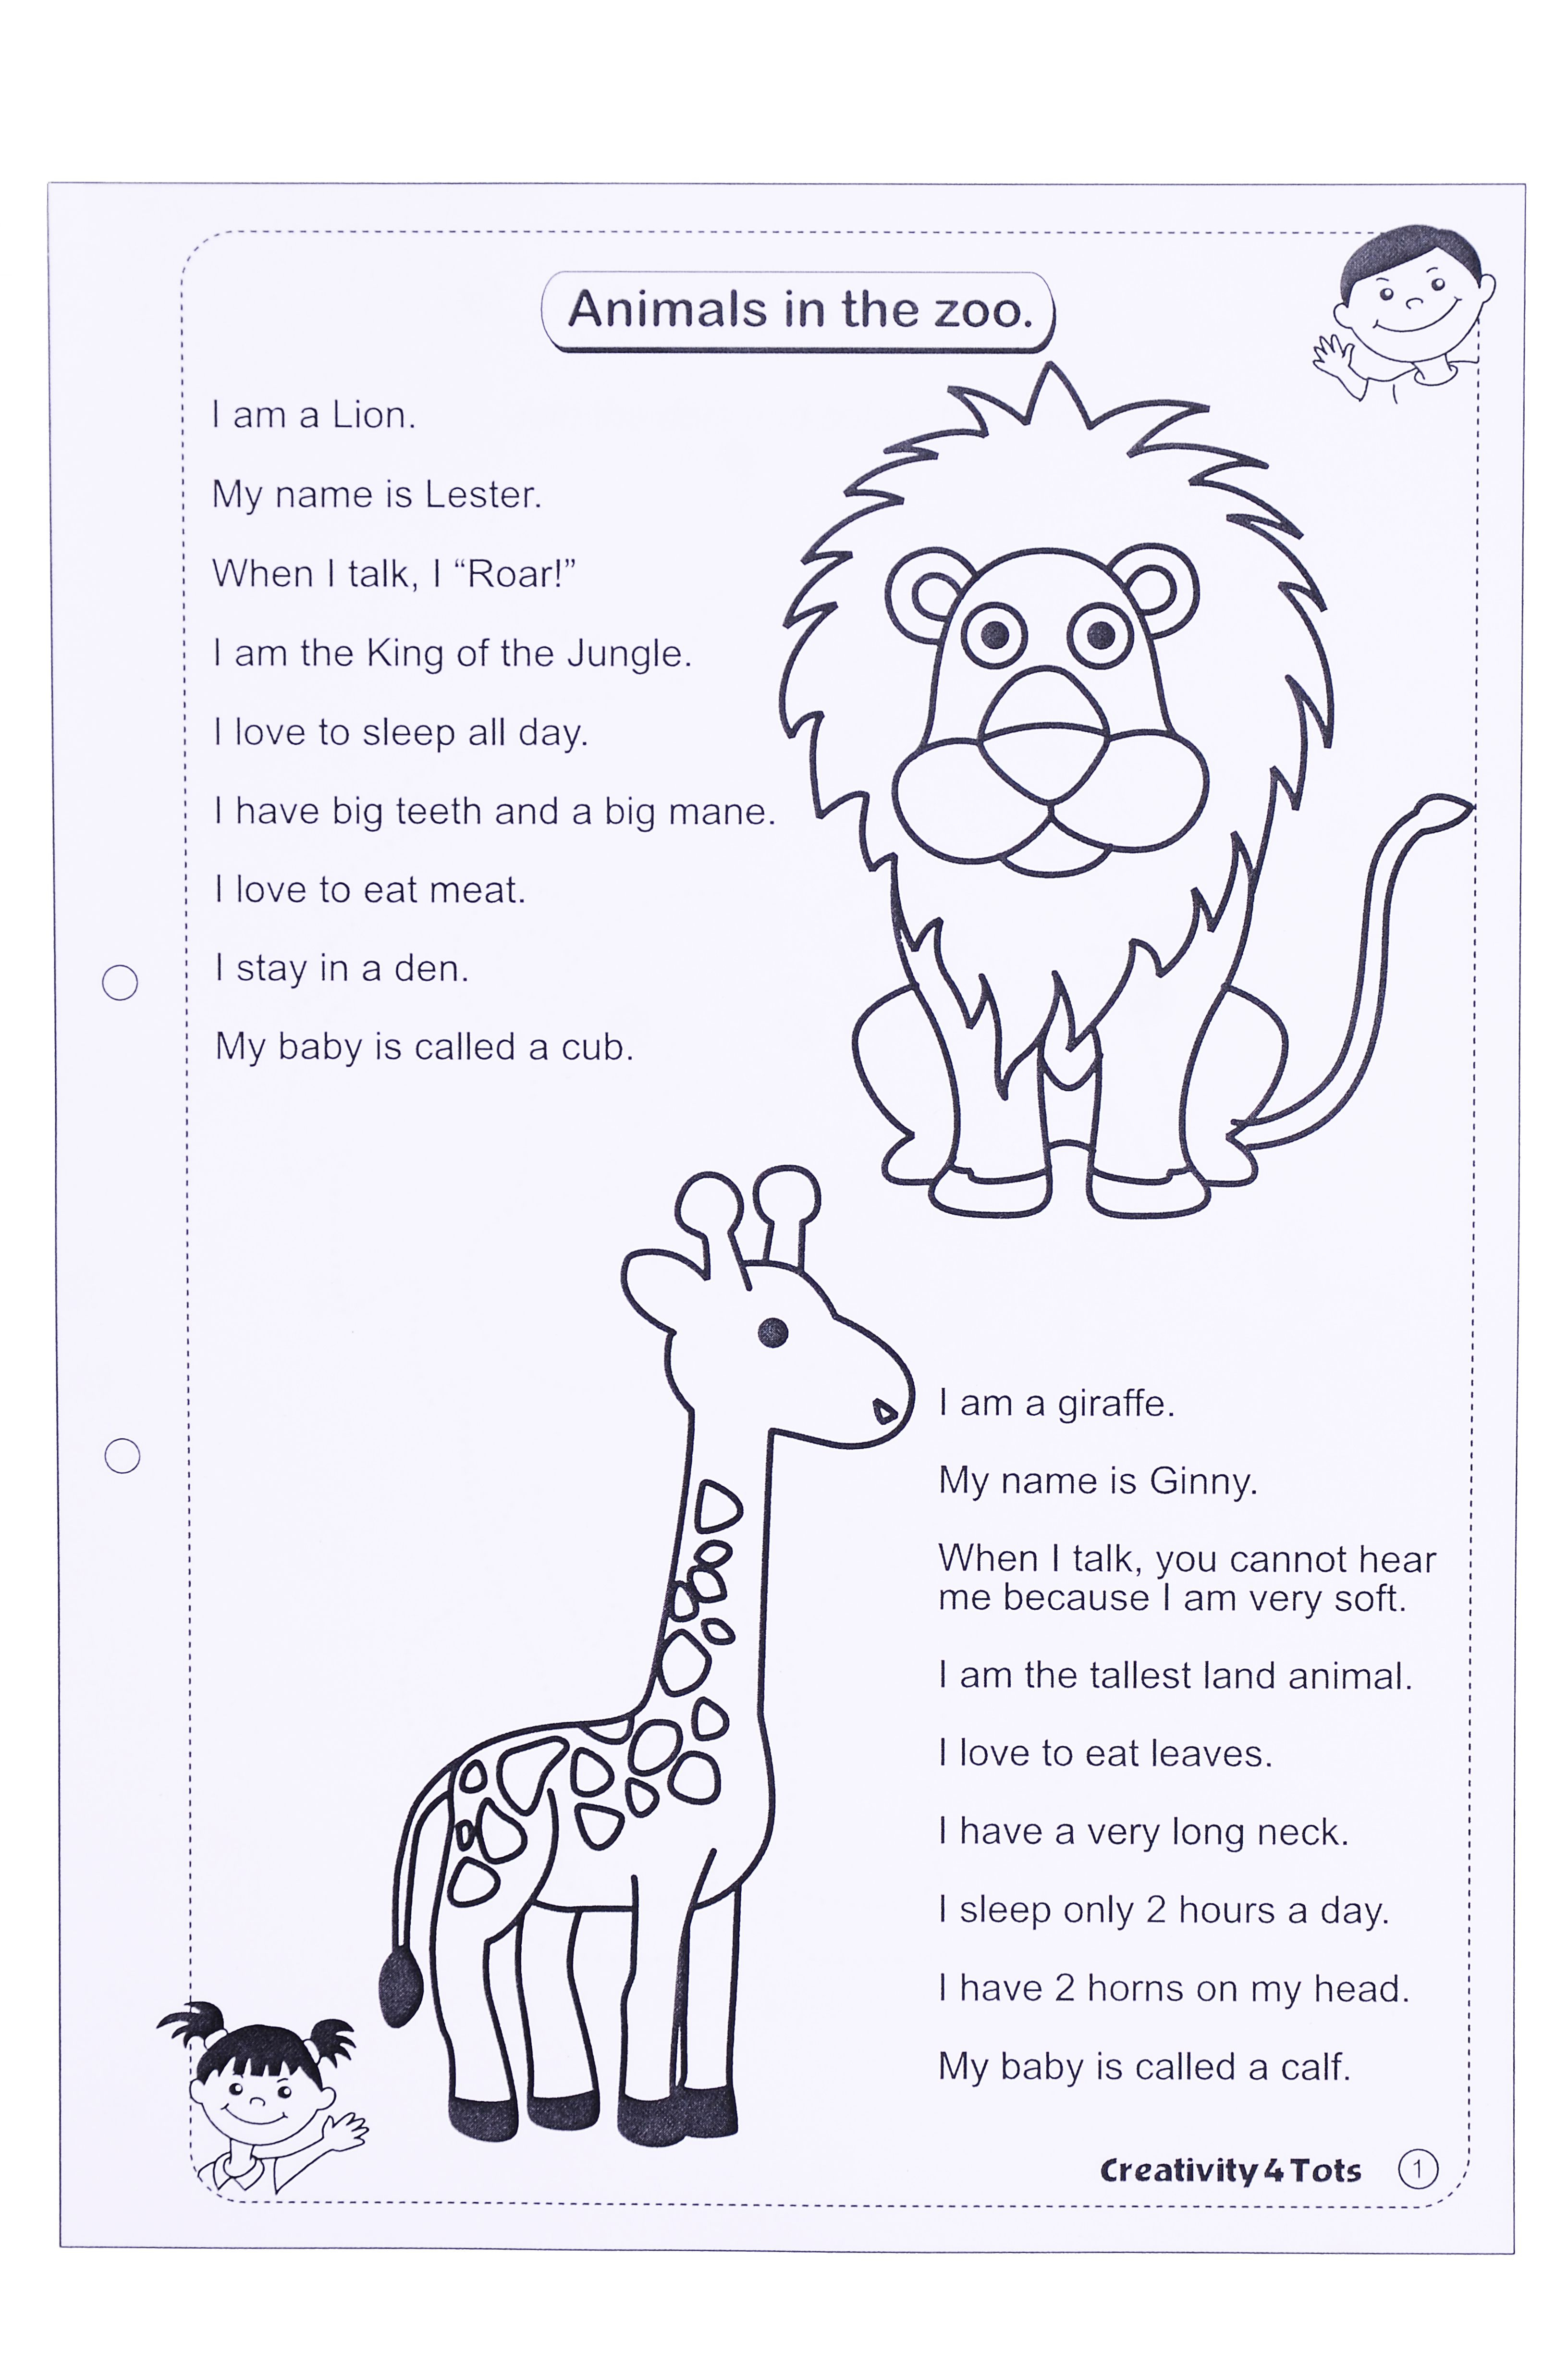 Zoo Animals Worksheet - This Worksheet Is Designed To Teach The | Free Printable Zoo Worksheets